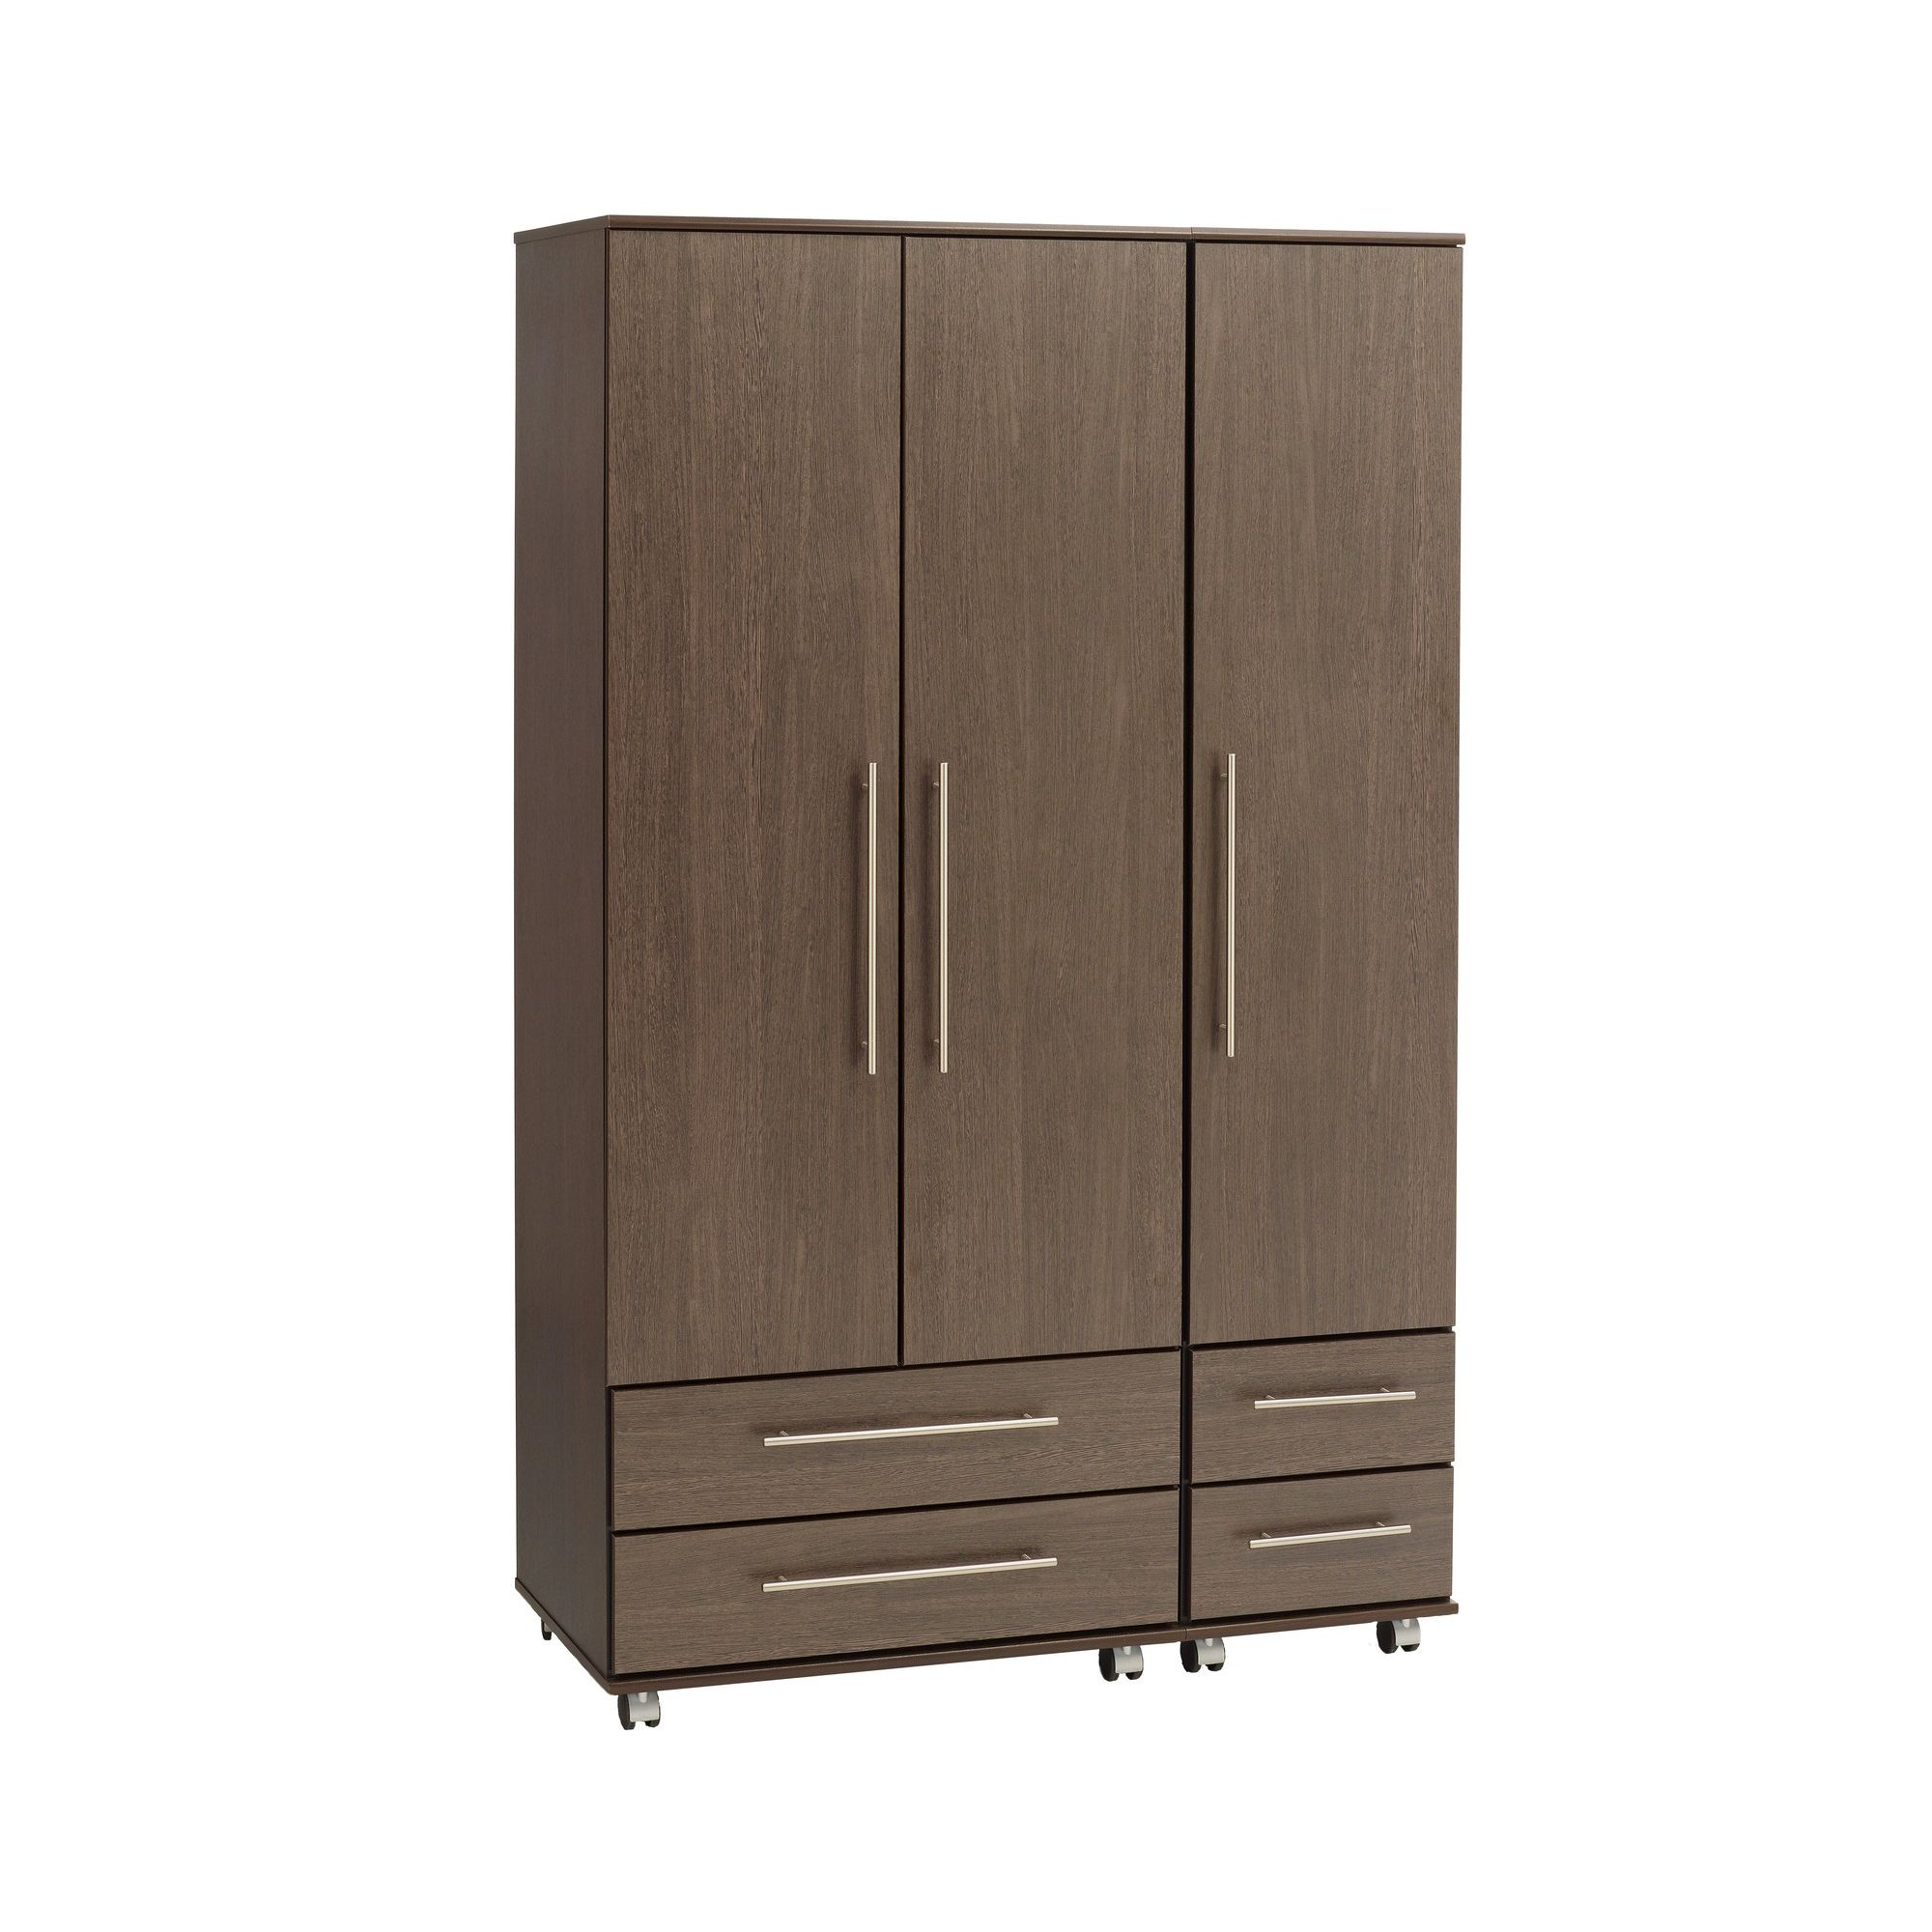 Ideal Furniture New York Triple Wardrobe with Four Drawers - Beech at Tesco Direct